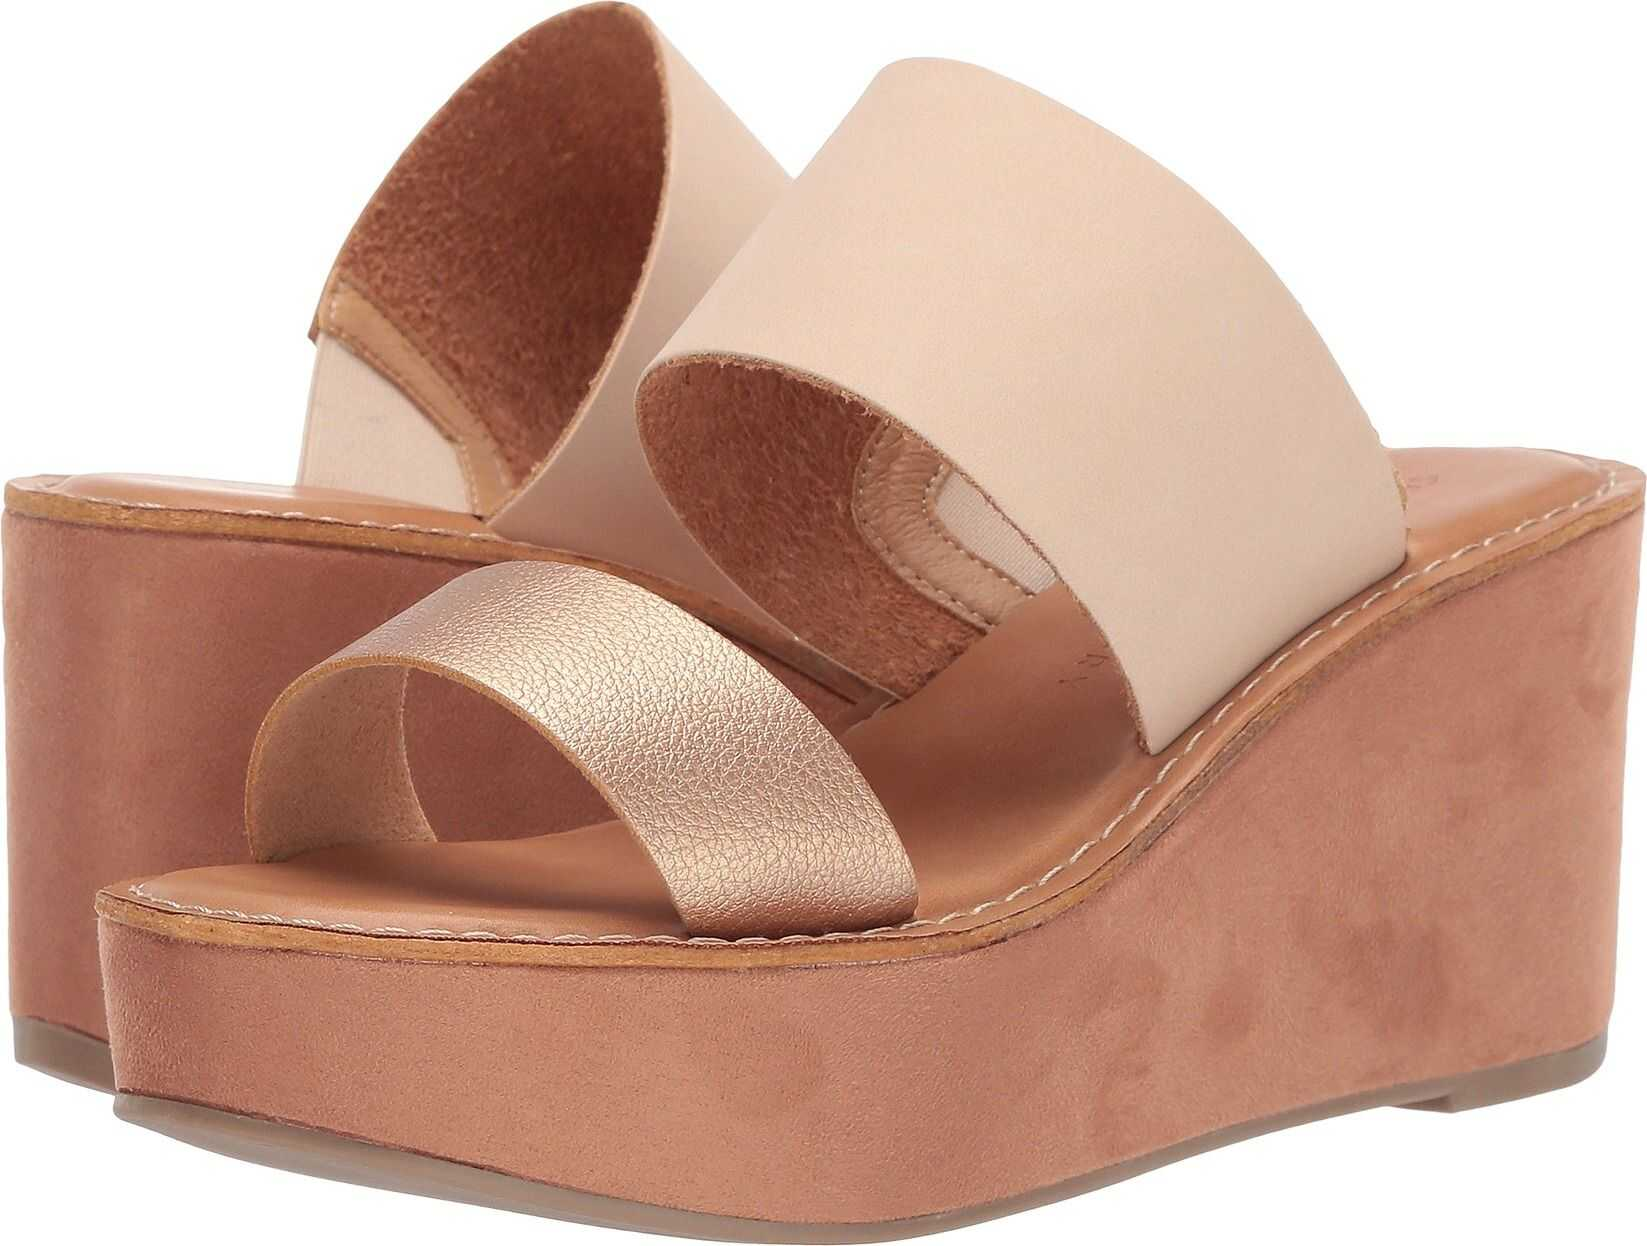 Chinese Laundry Ollie Rose Gold/Cream